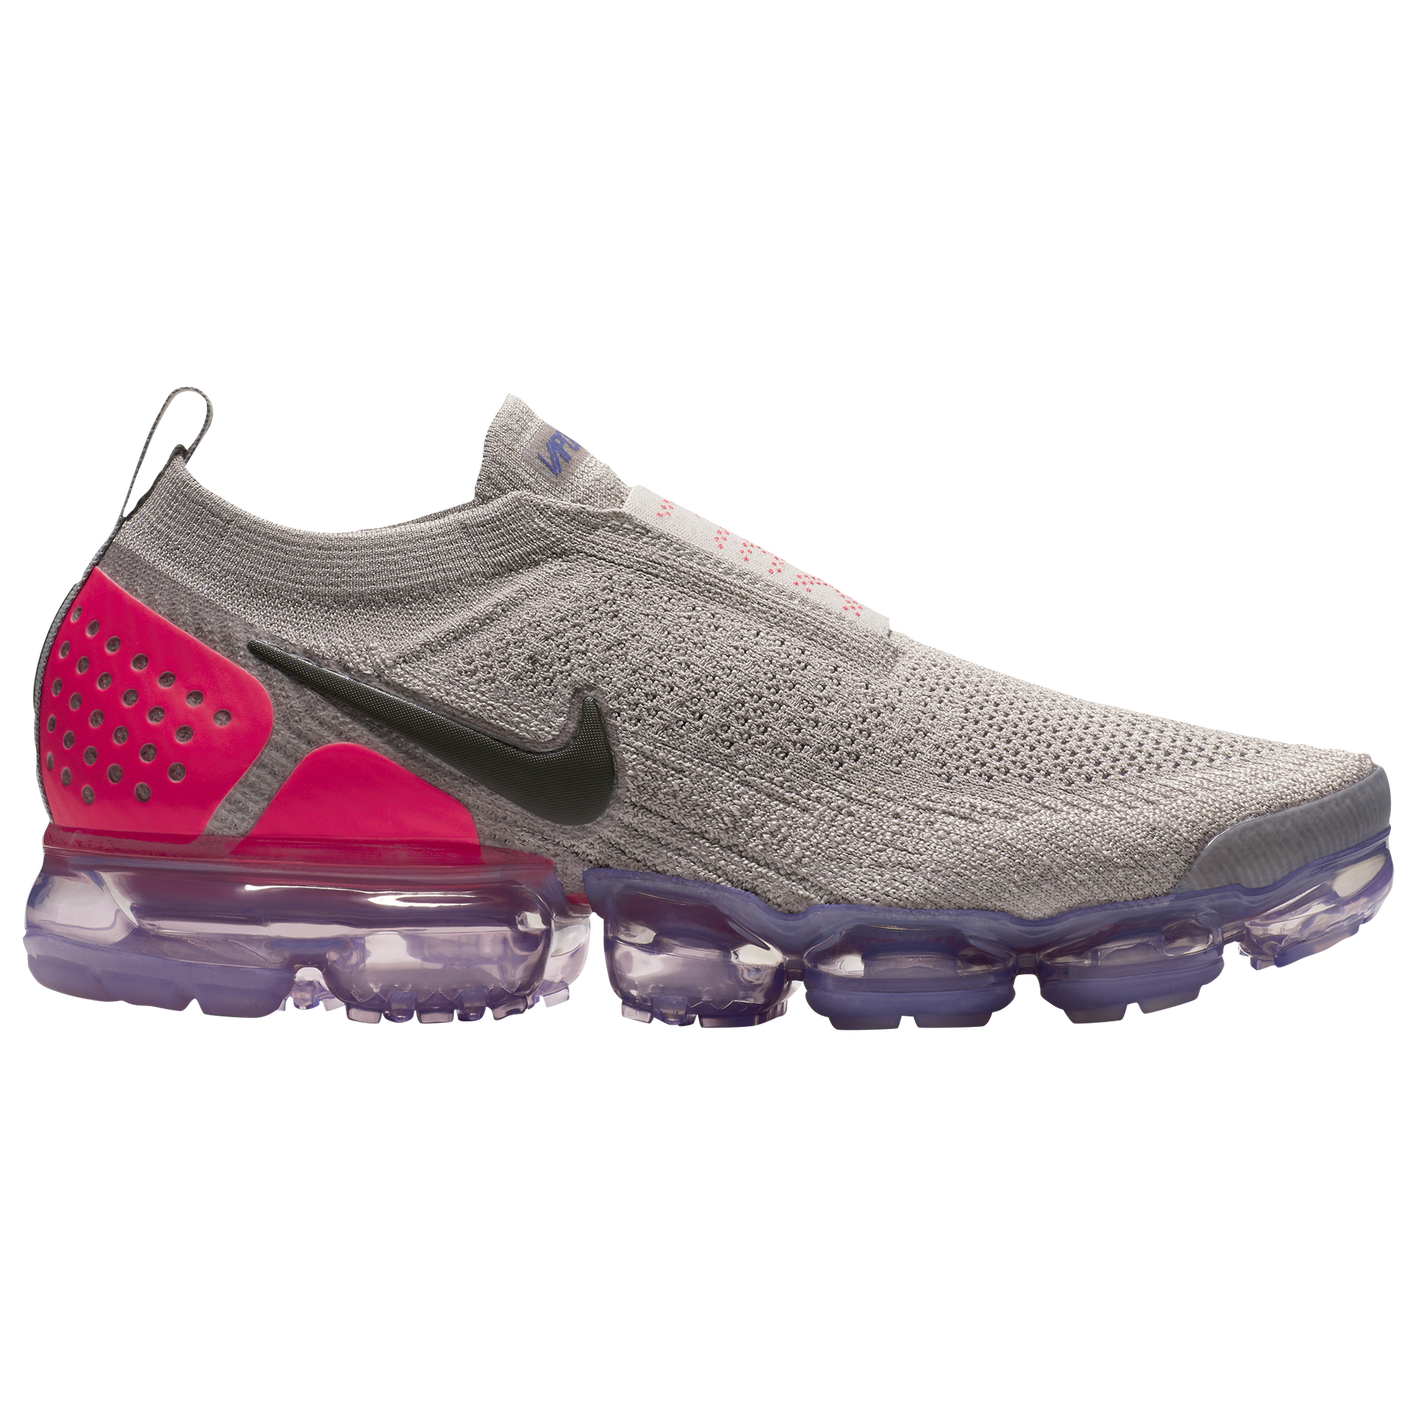 8f925982b86d Nike Air Vapormax Flyknit Moc 2 - Men s - Casual - Shoes - Moon ...